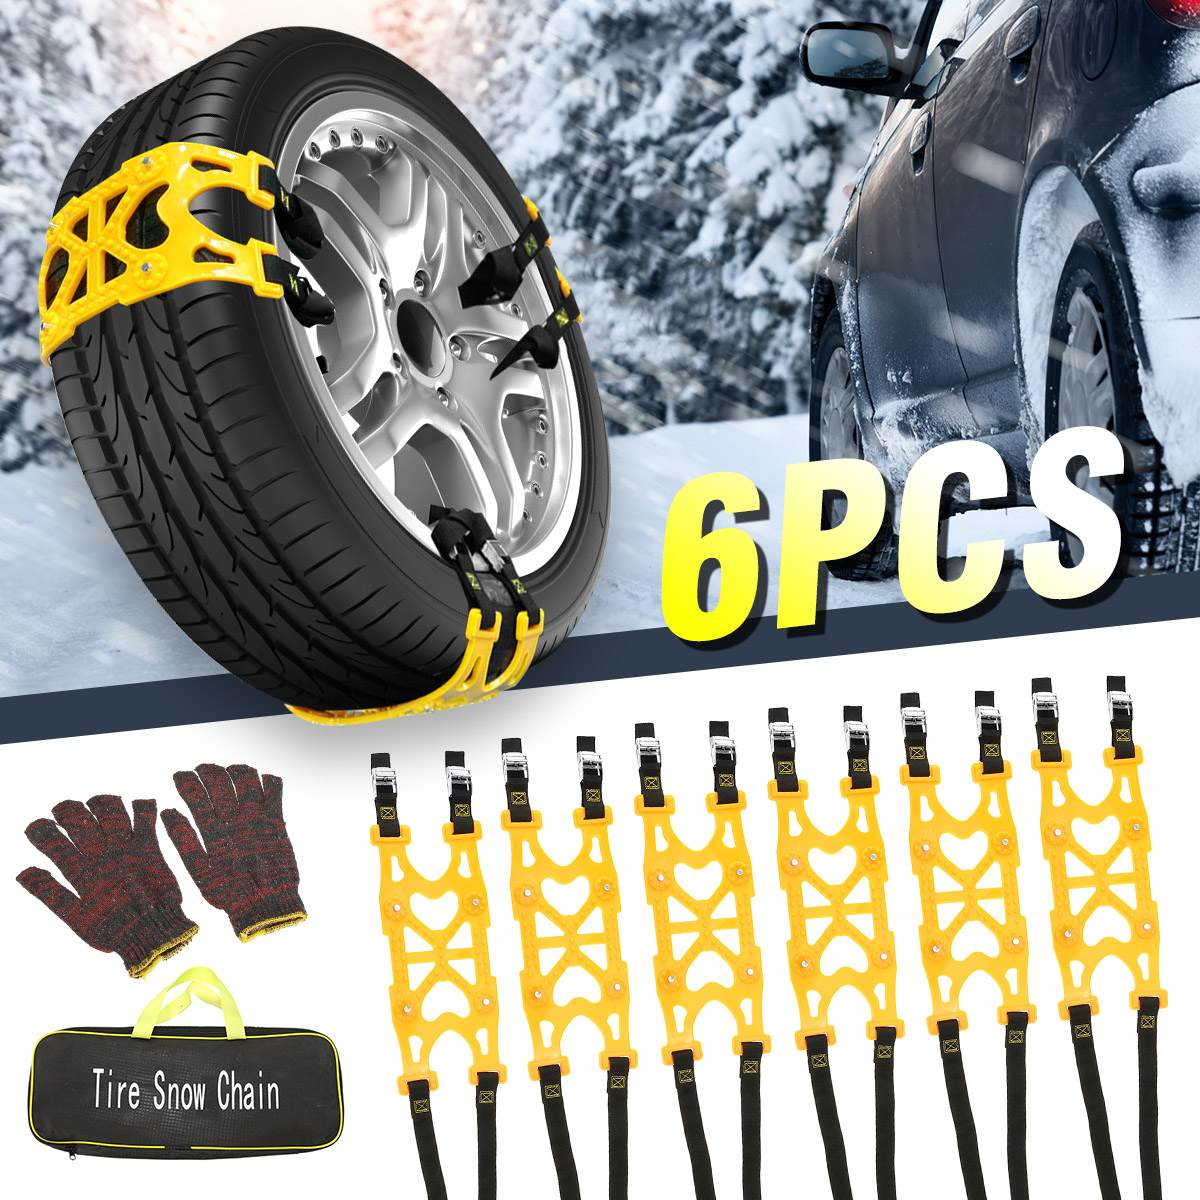 6pcs Winter Car Tire Snow Chains Adjustable Anti-skid Tire Snow Chains Wheel TPU Chains For Truck Car SUV 185-255mm With Gloves